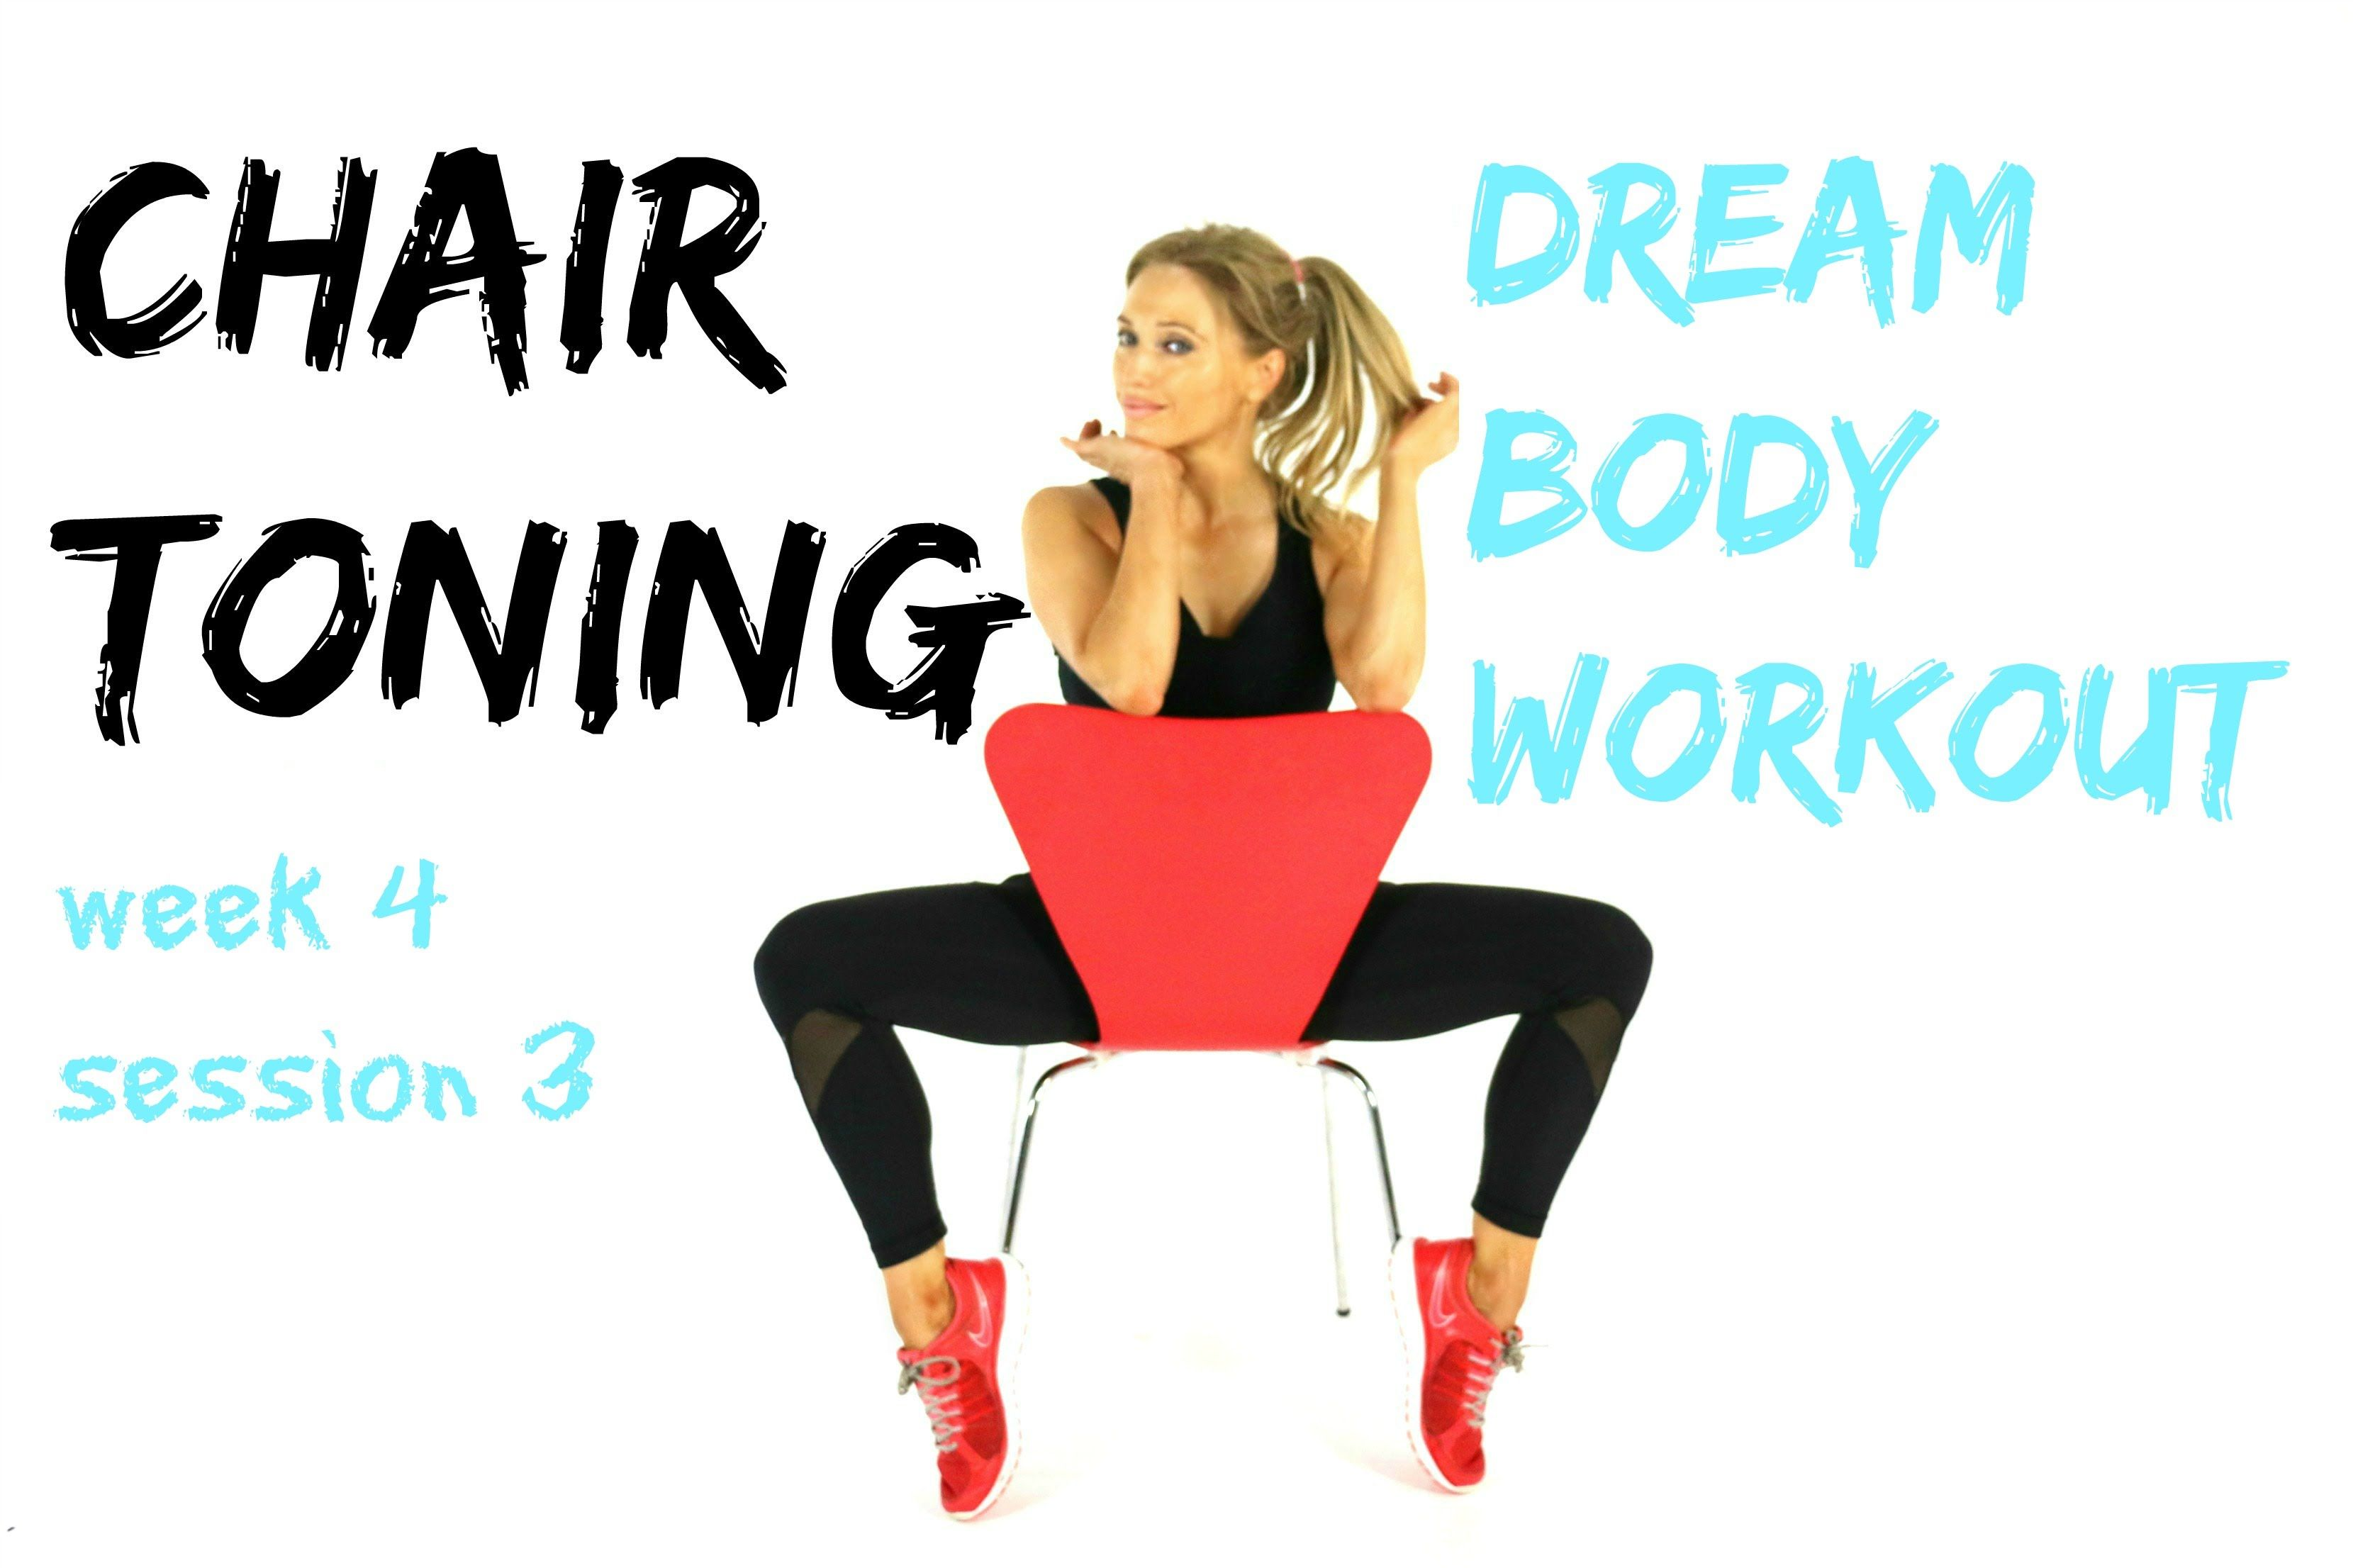 Get your dream body with these total body toning moves. Lucy xx  sc 1 st  Pinterest & Get your dream body with these total body toning moves. Lucy xx ...